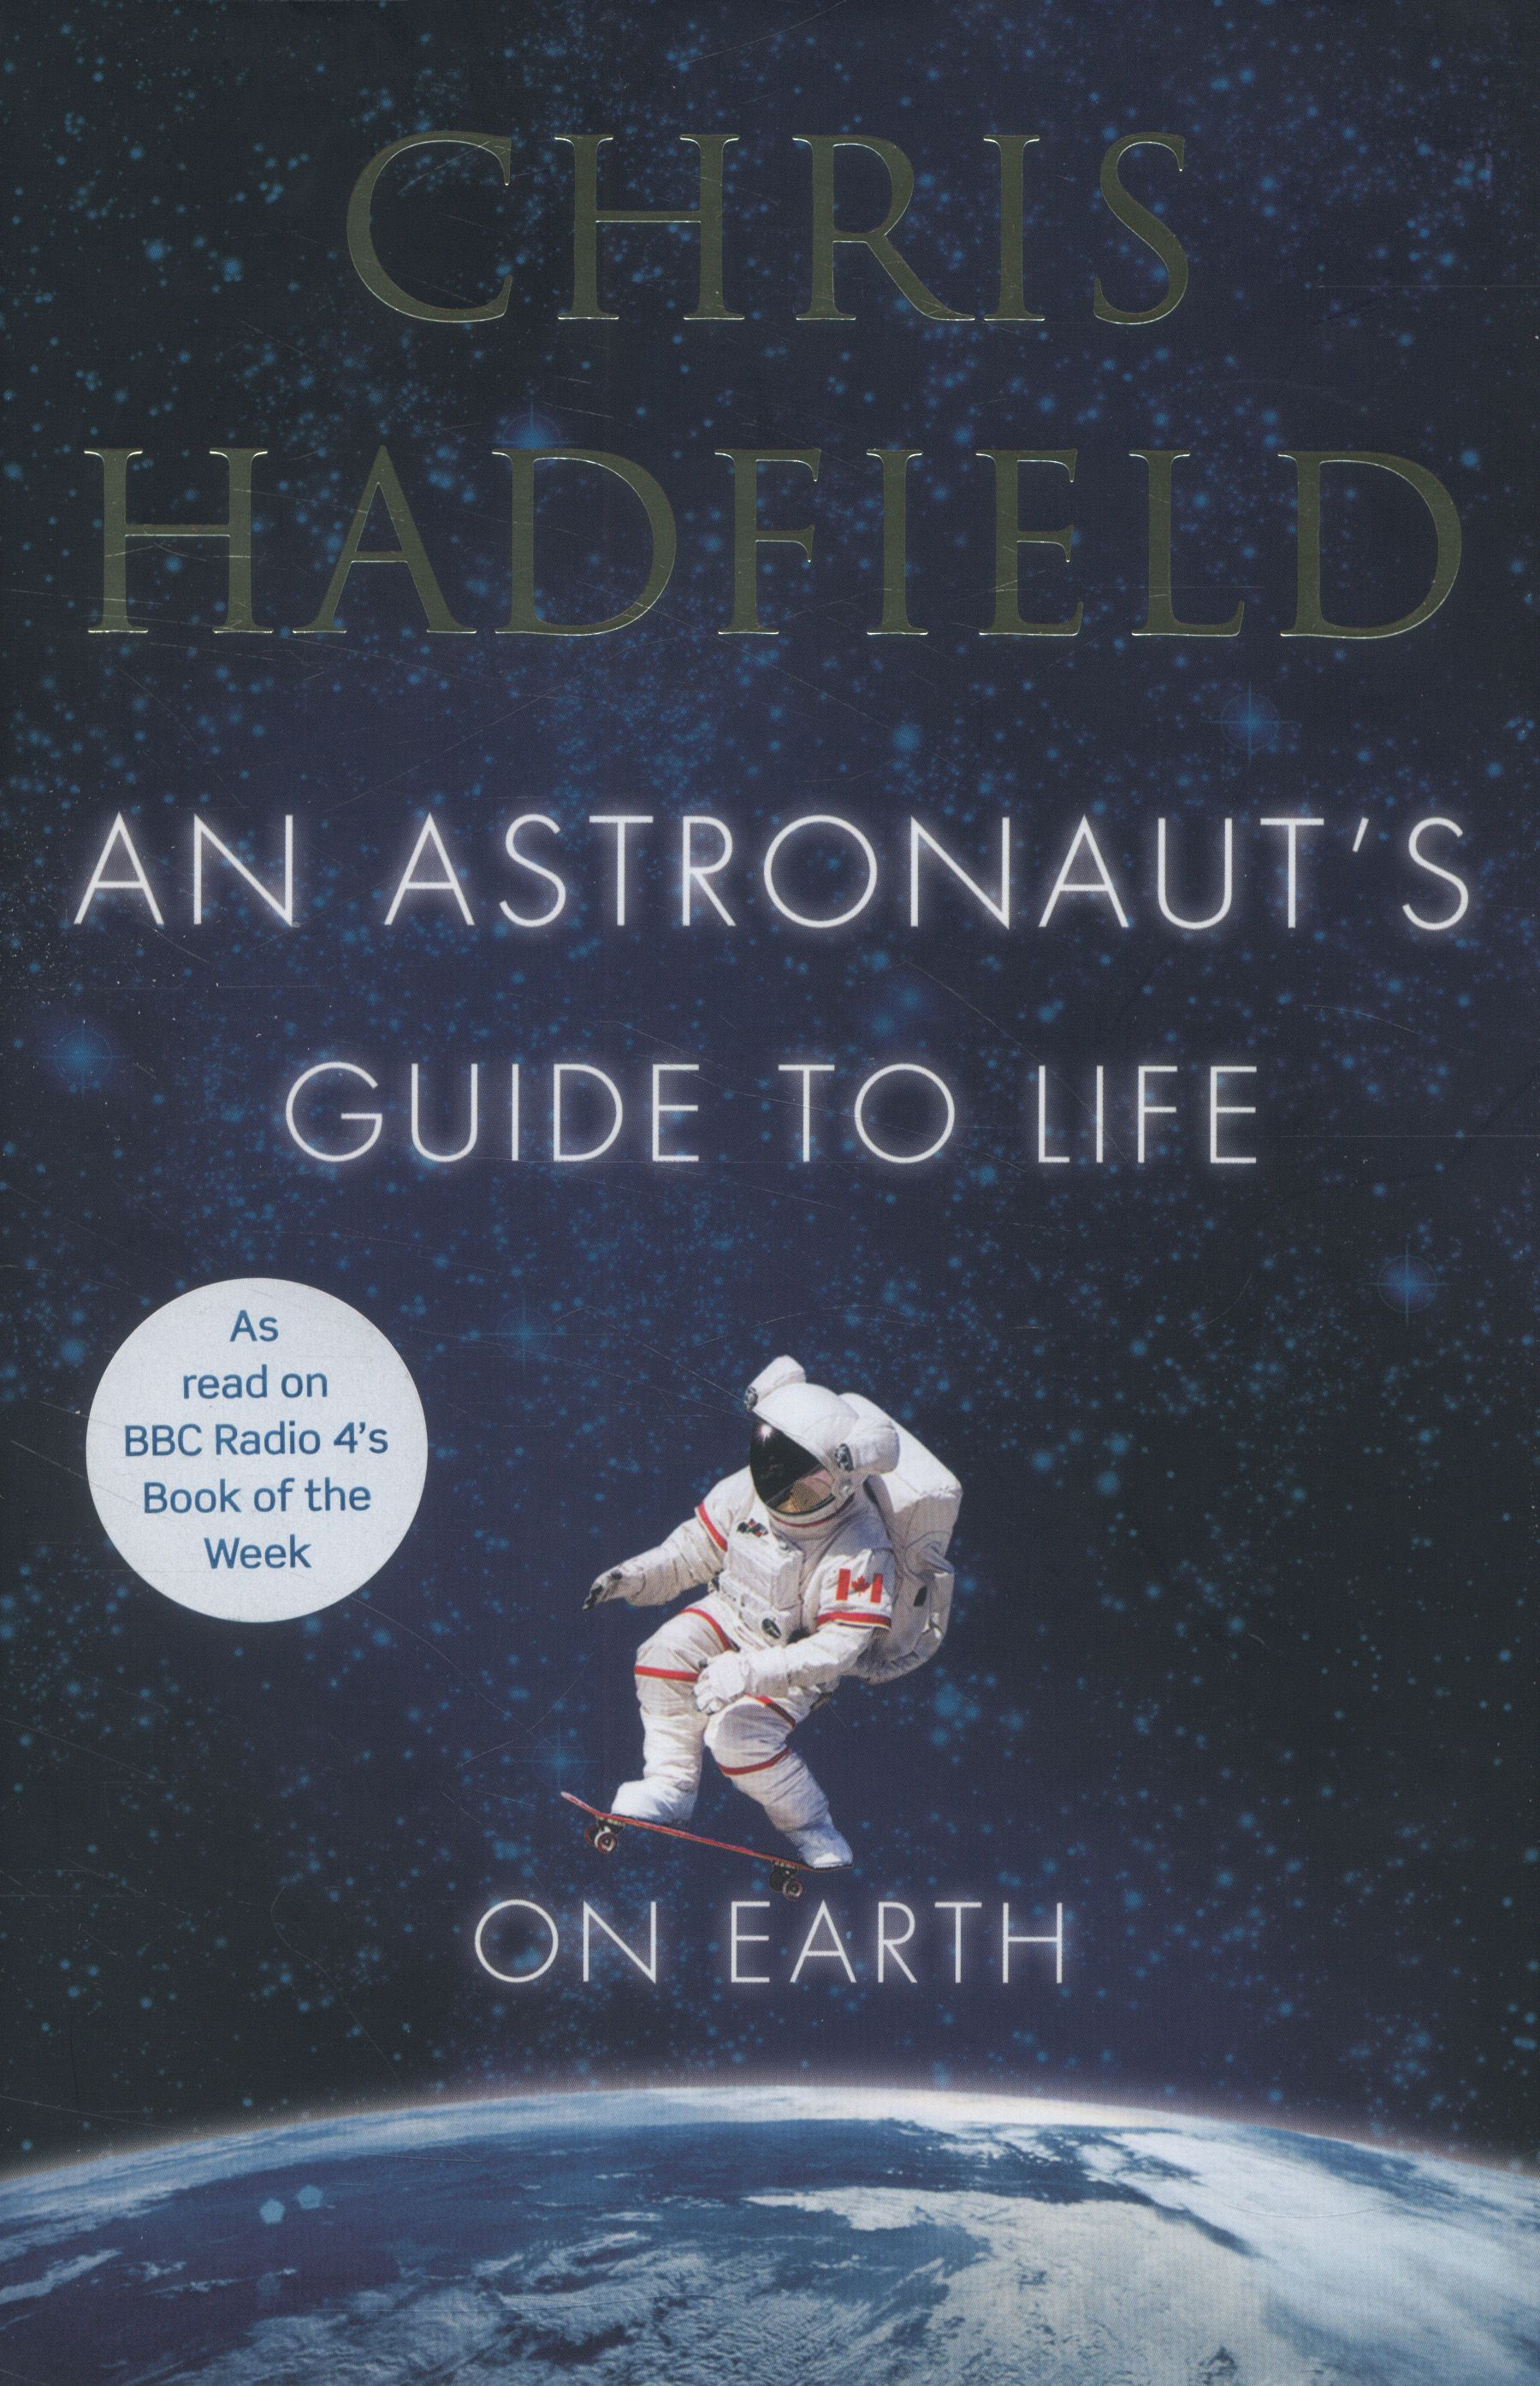 An astronaut's guide to life on Earth By Chris Hadfield.